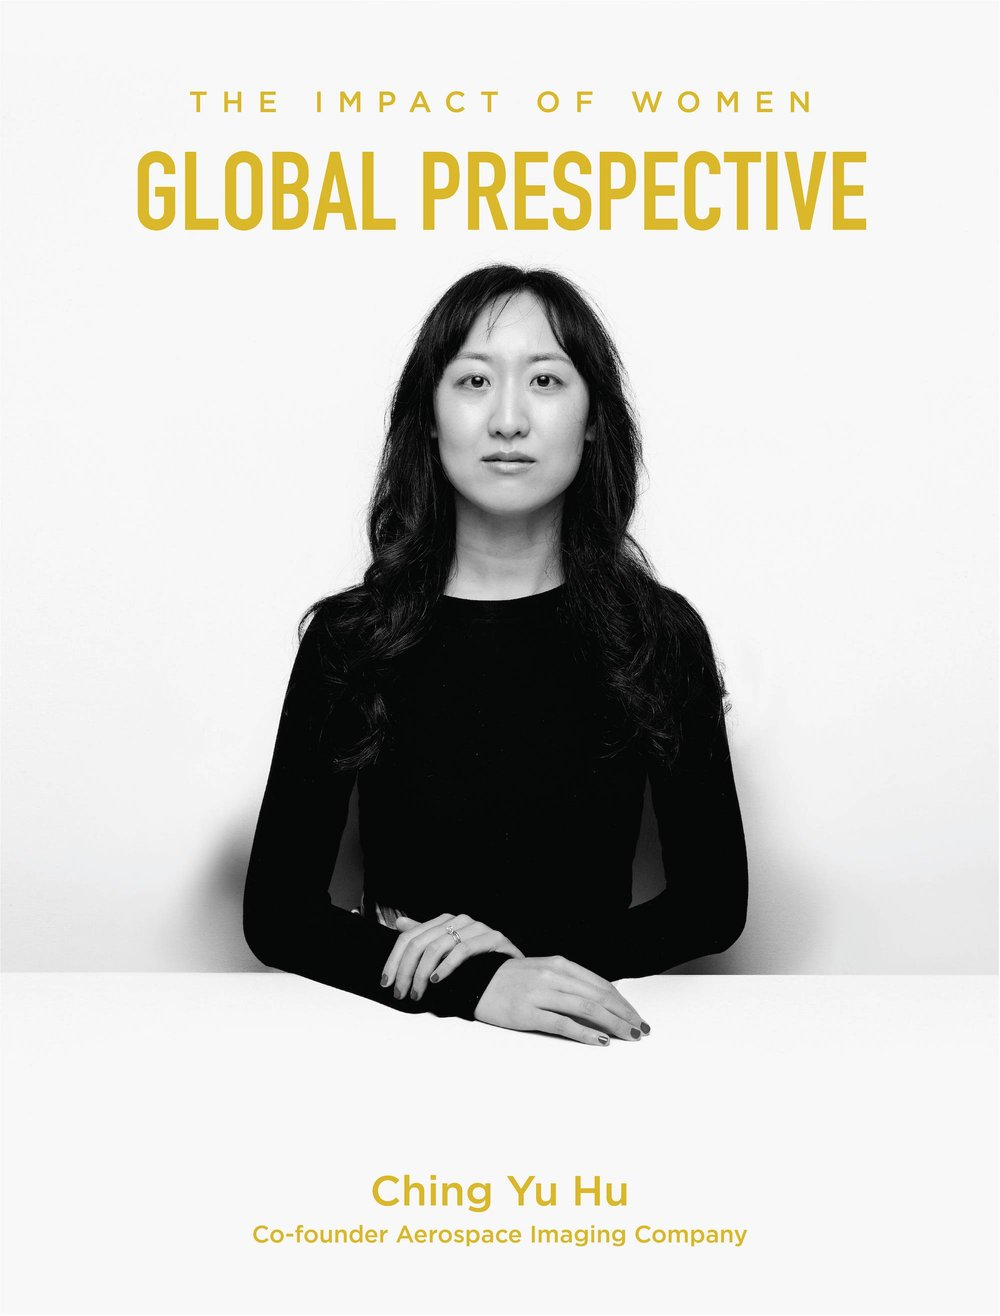 Ching Yu Hu has a Global Perspective